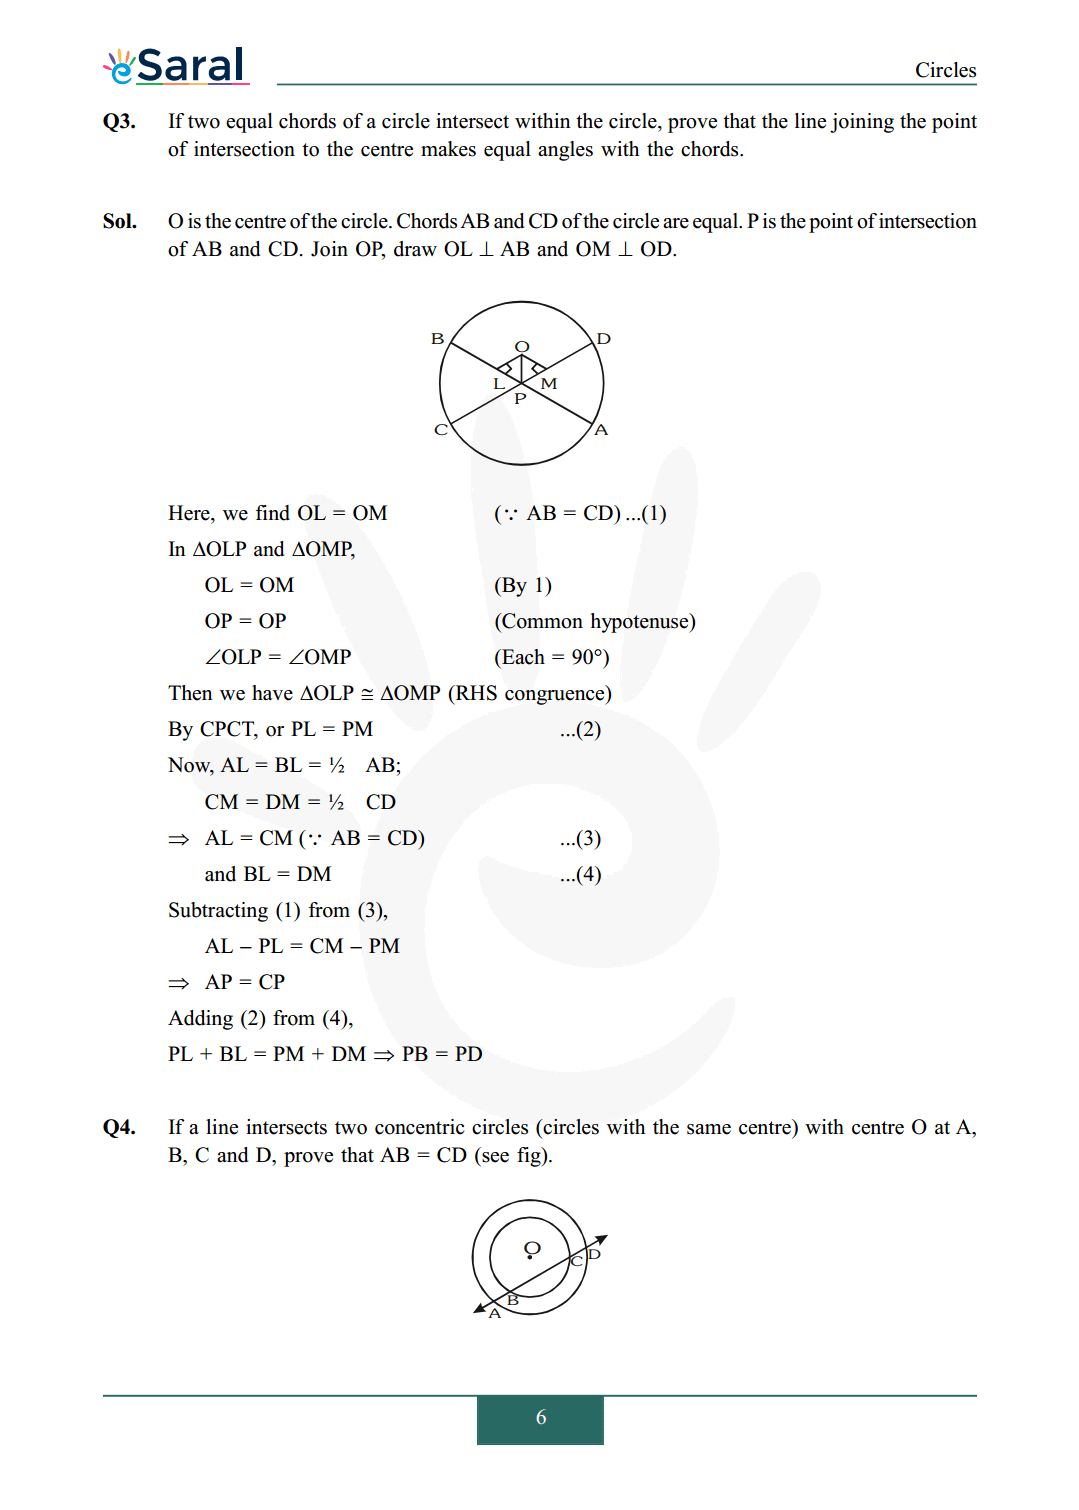 NCERT Solutions for Class 9 Maths chapter 10 Image 7